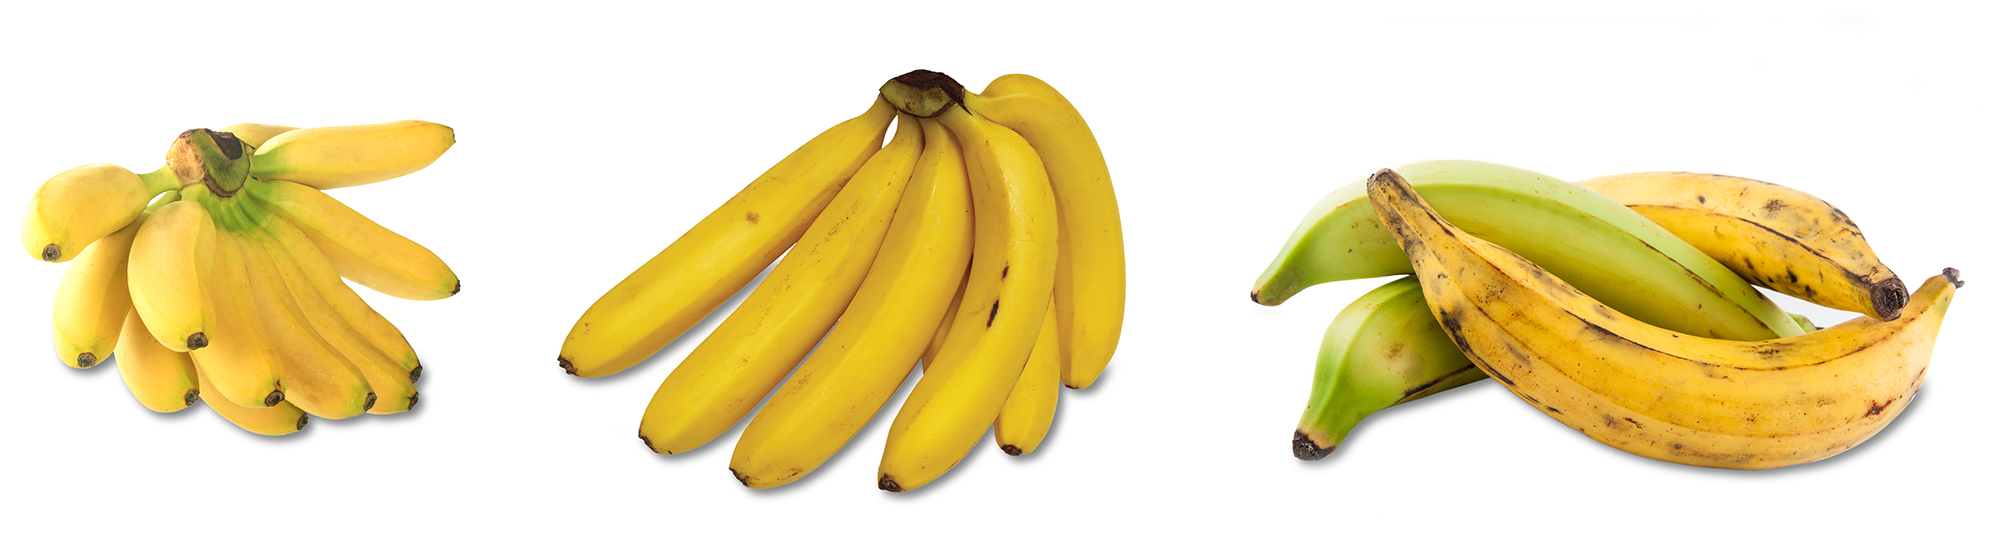 7-1_AssortedBananas.jpg